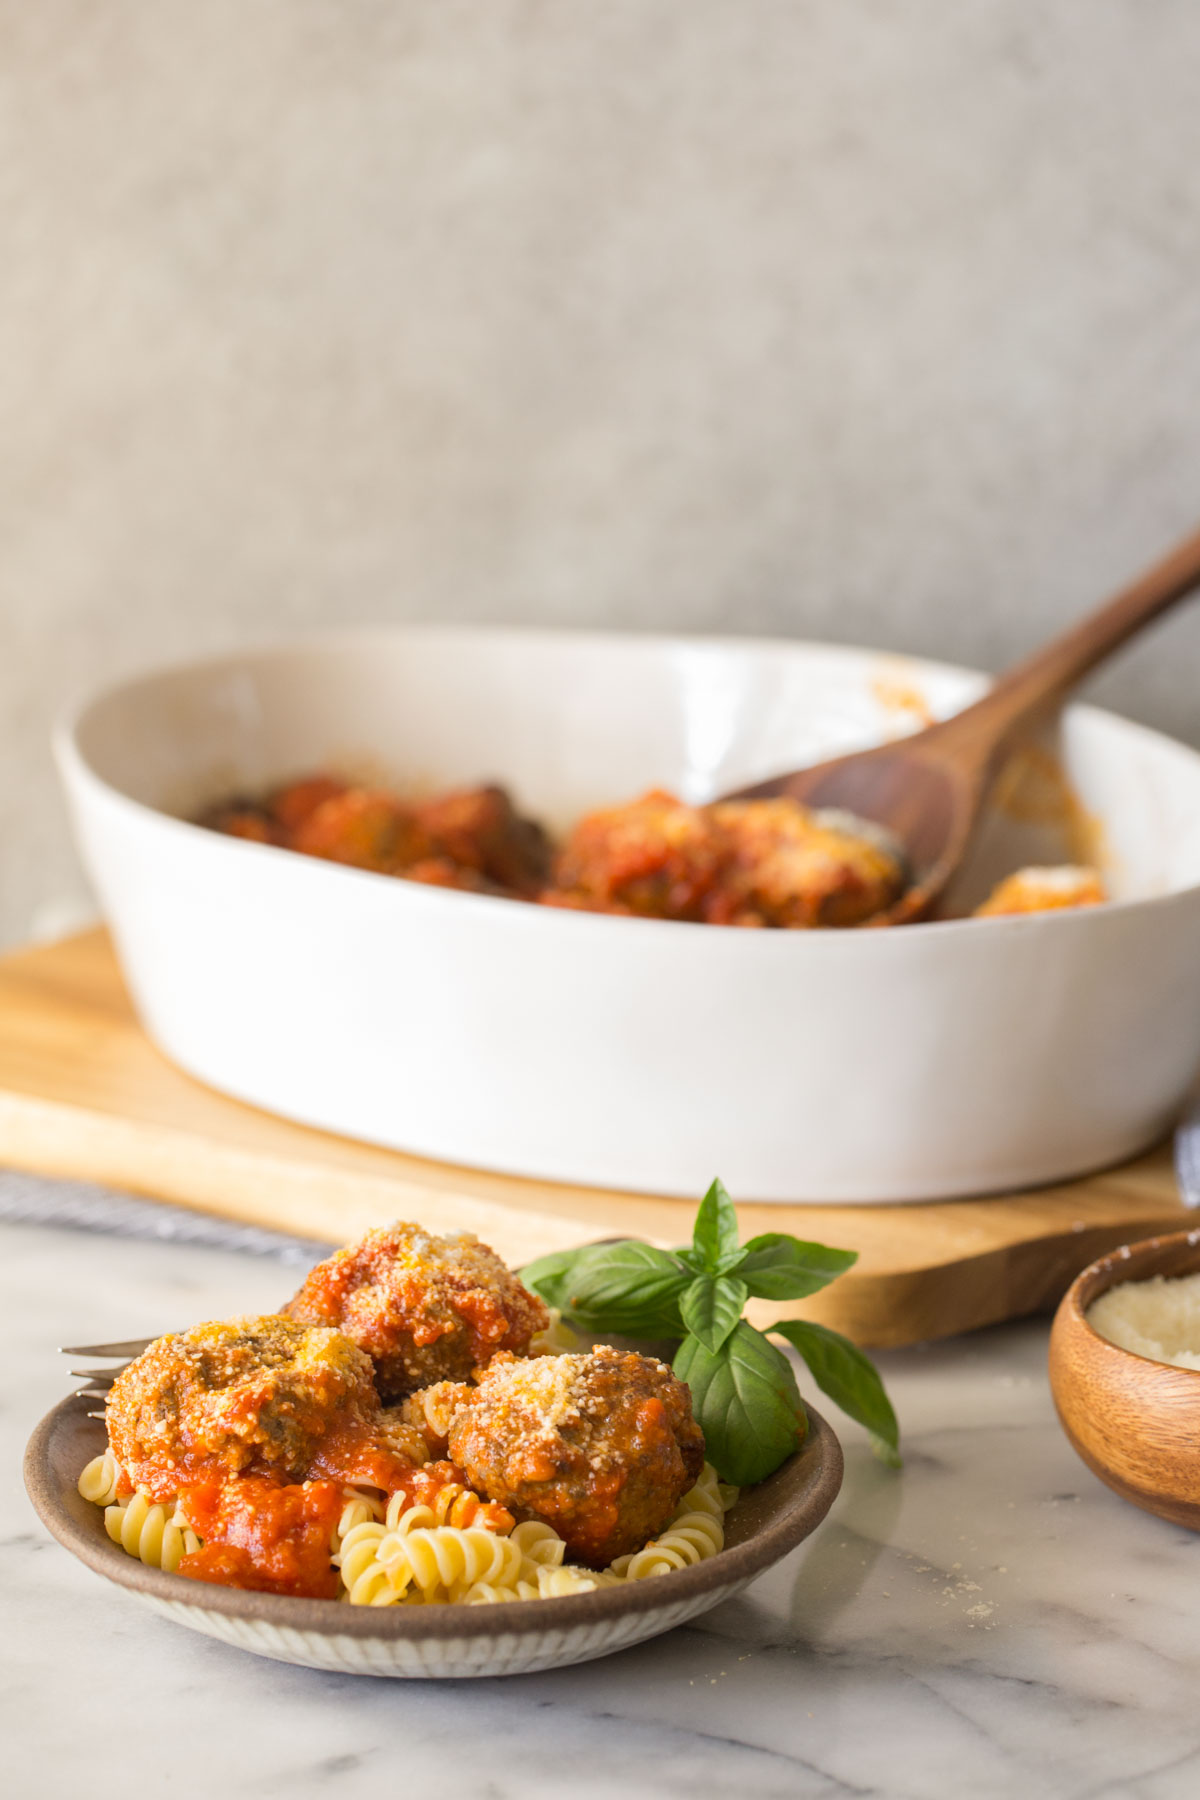 Easy Broiled Italian Meatballs served over rotini pasta in a bowl, with a baking dish of more meatballs in the background.